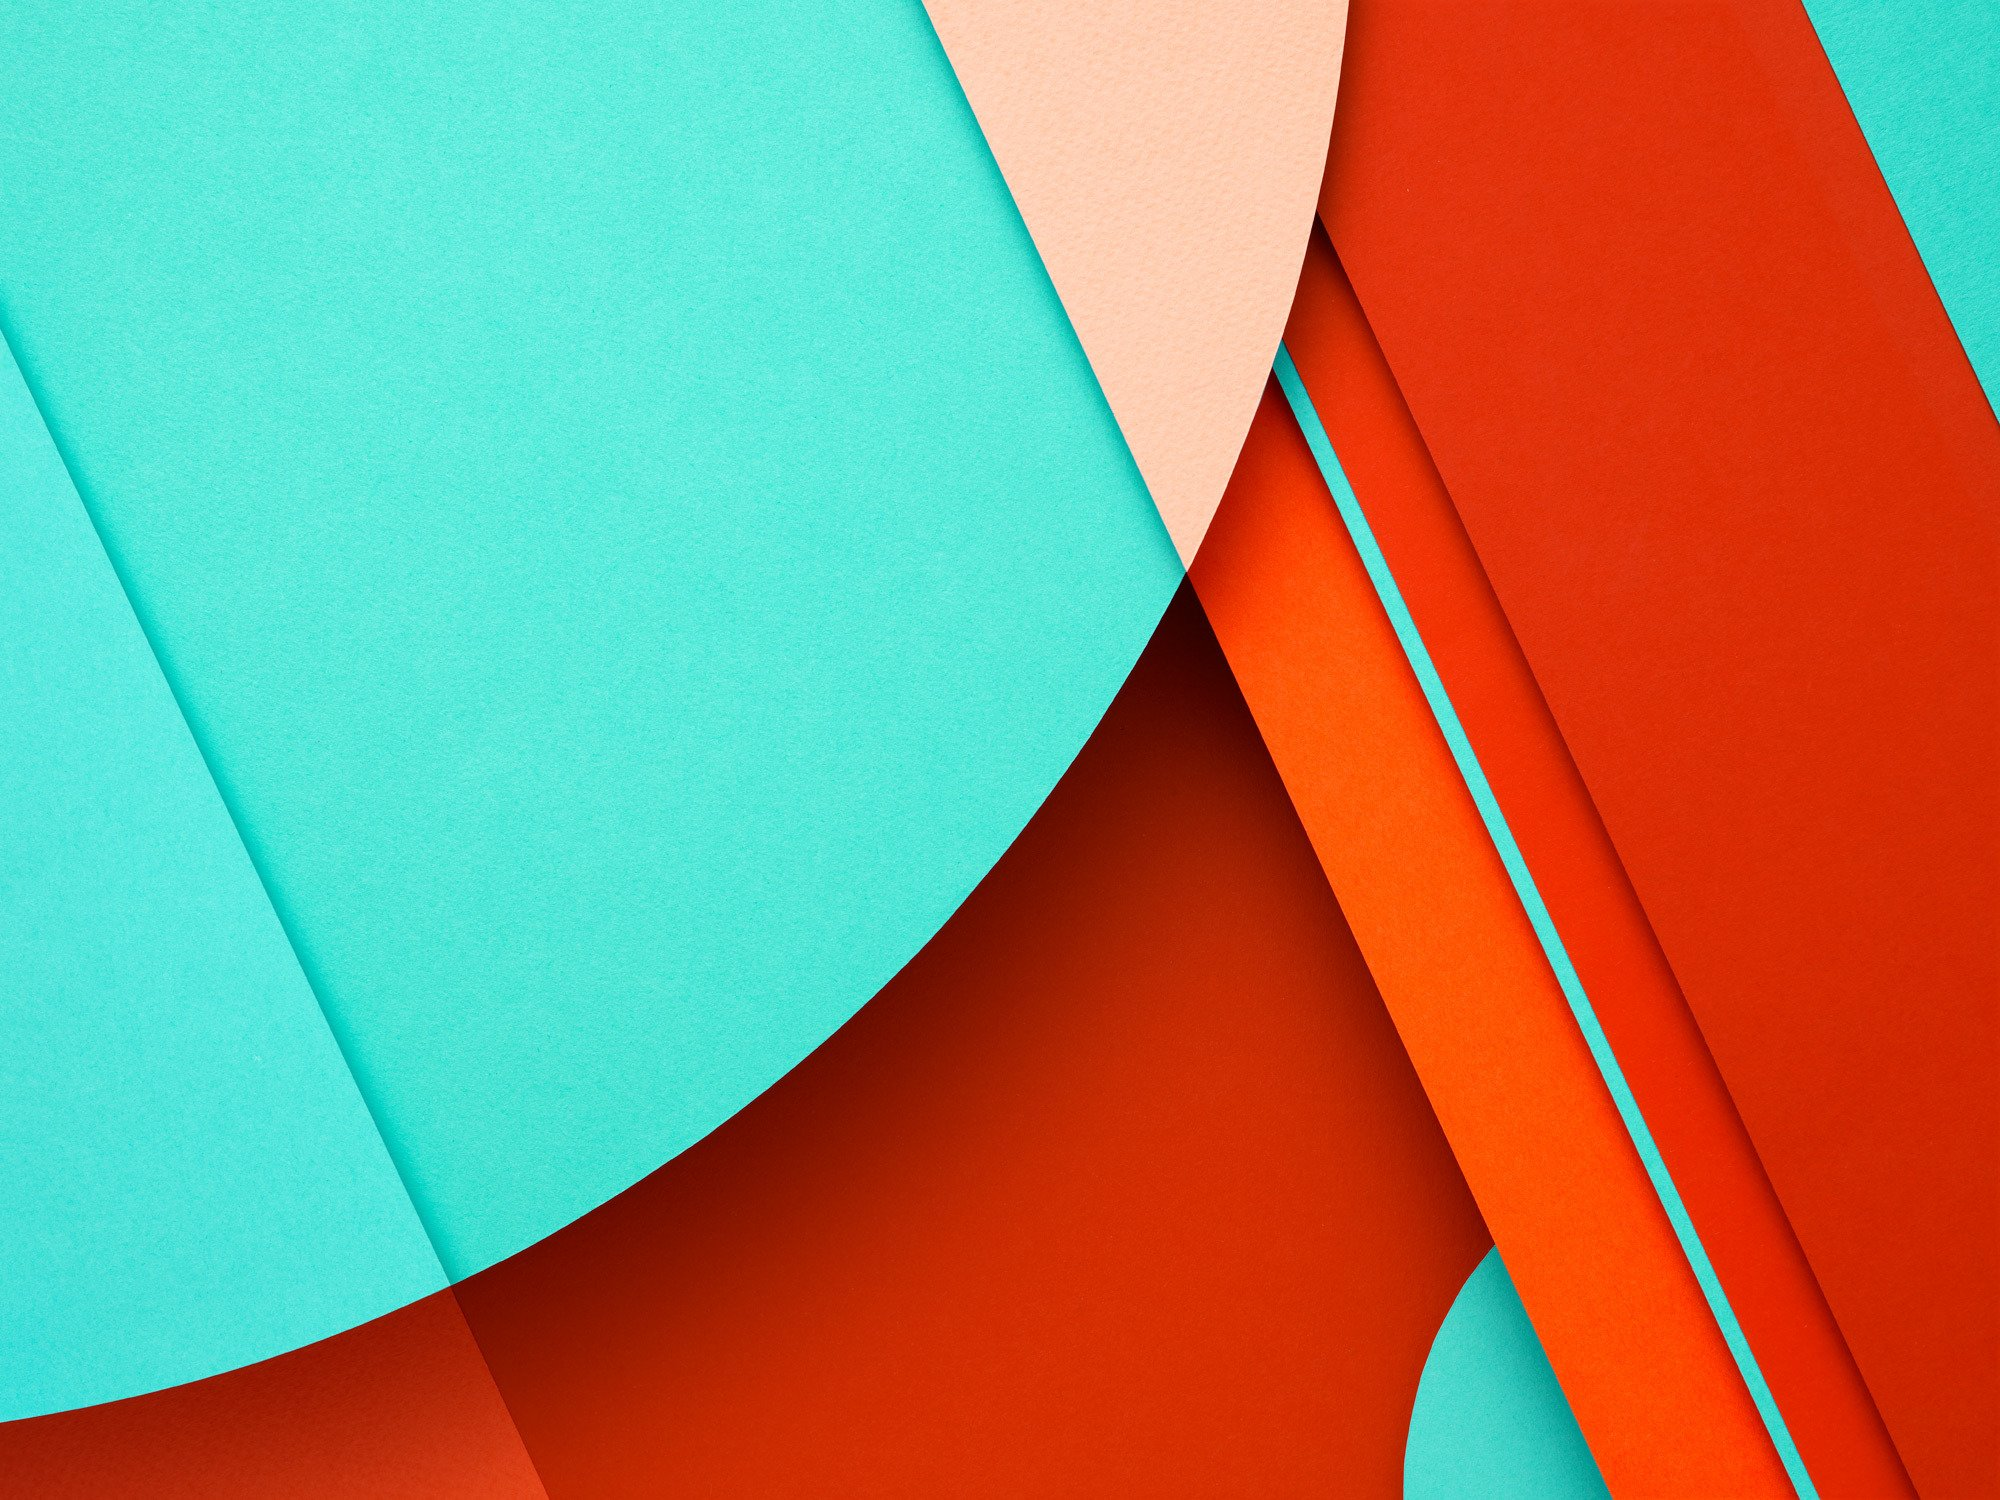 Color Line Design : Ultimate material design inspired wallpaper collection